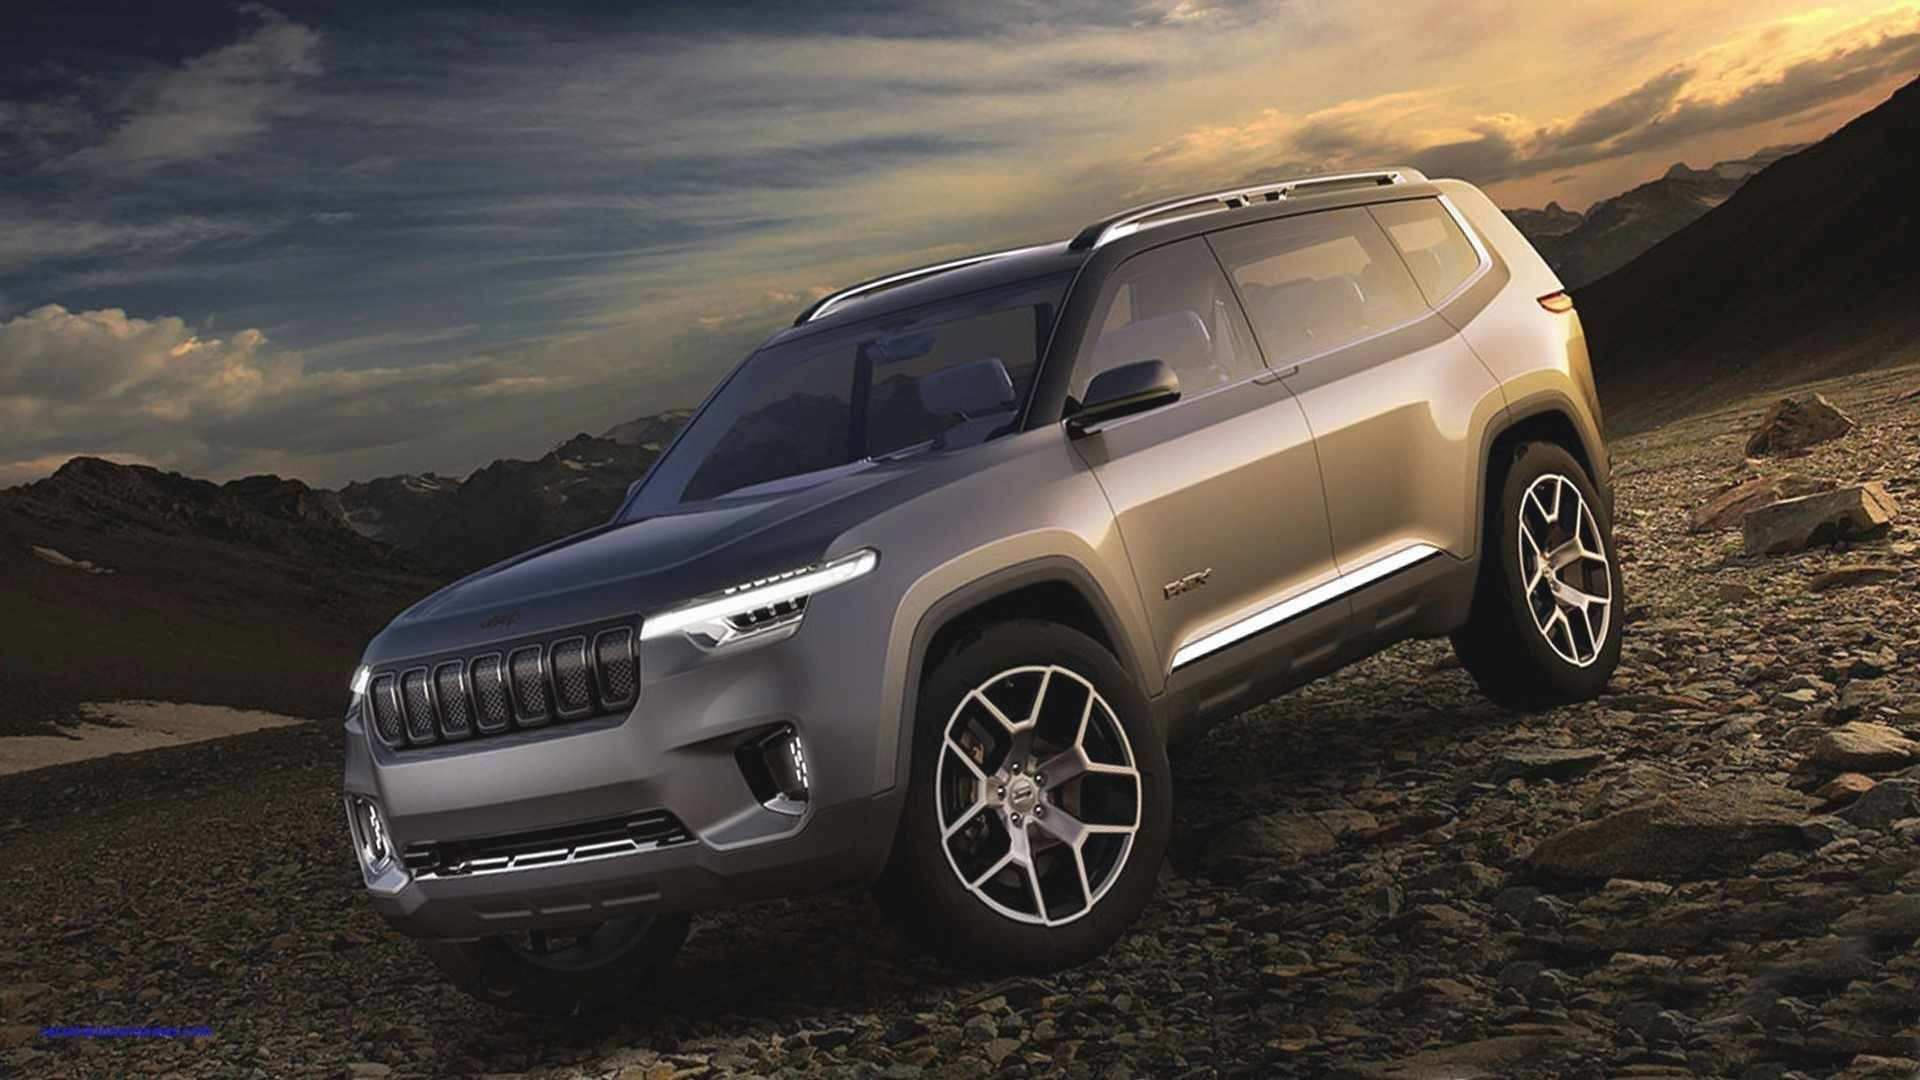 94 All New Jeep Jeepster 2020 Rumors for Jeep Jeepster 2020